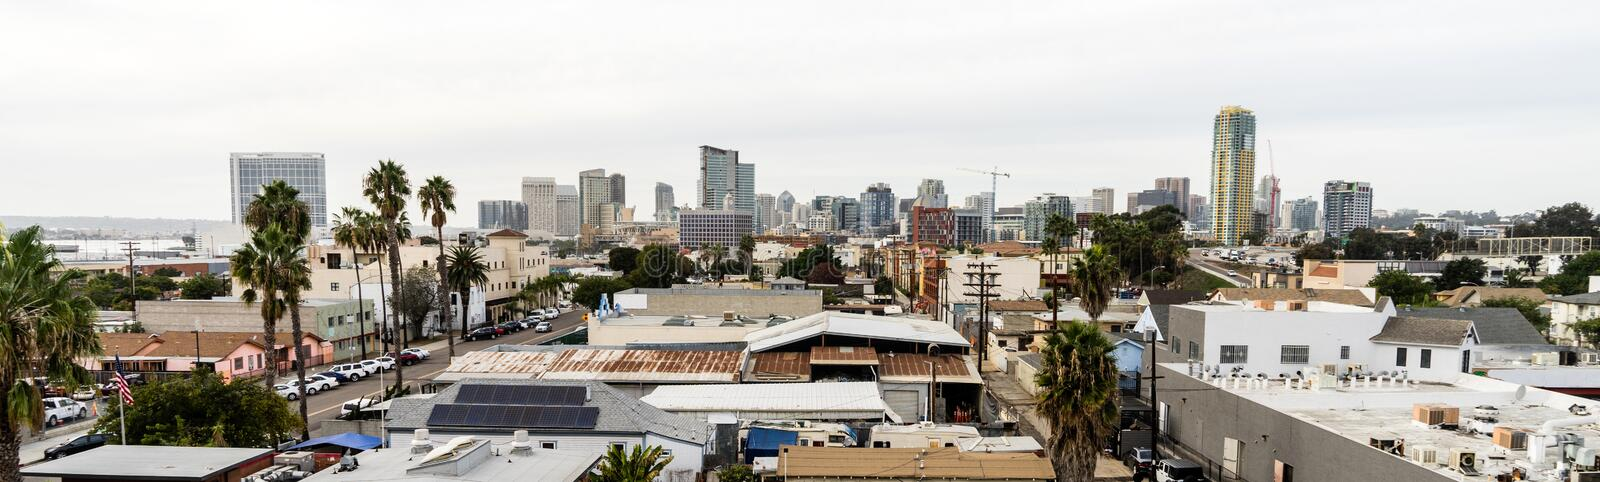 San Diego South End Bario Downtown City Skyline. Palm trees and buildings are dense in the south end of San Diego California stock image